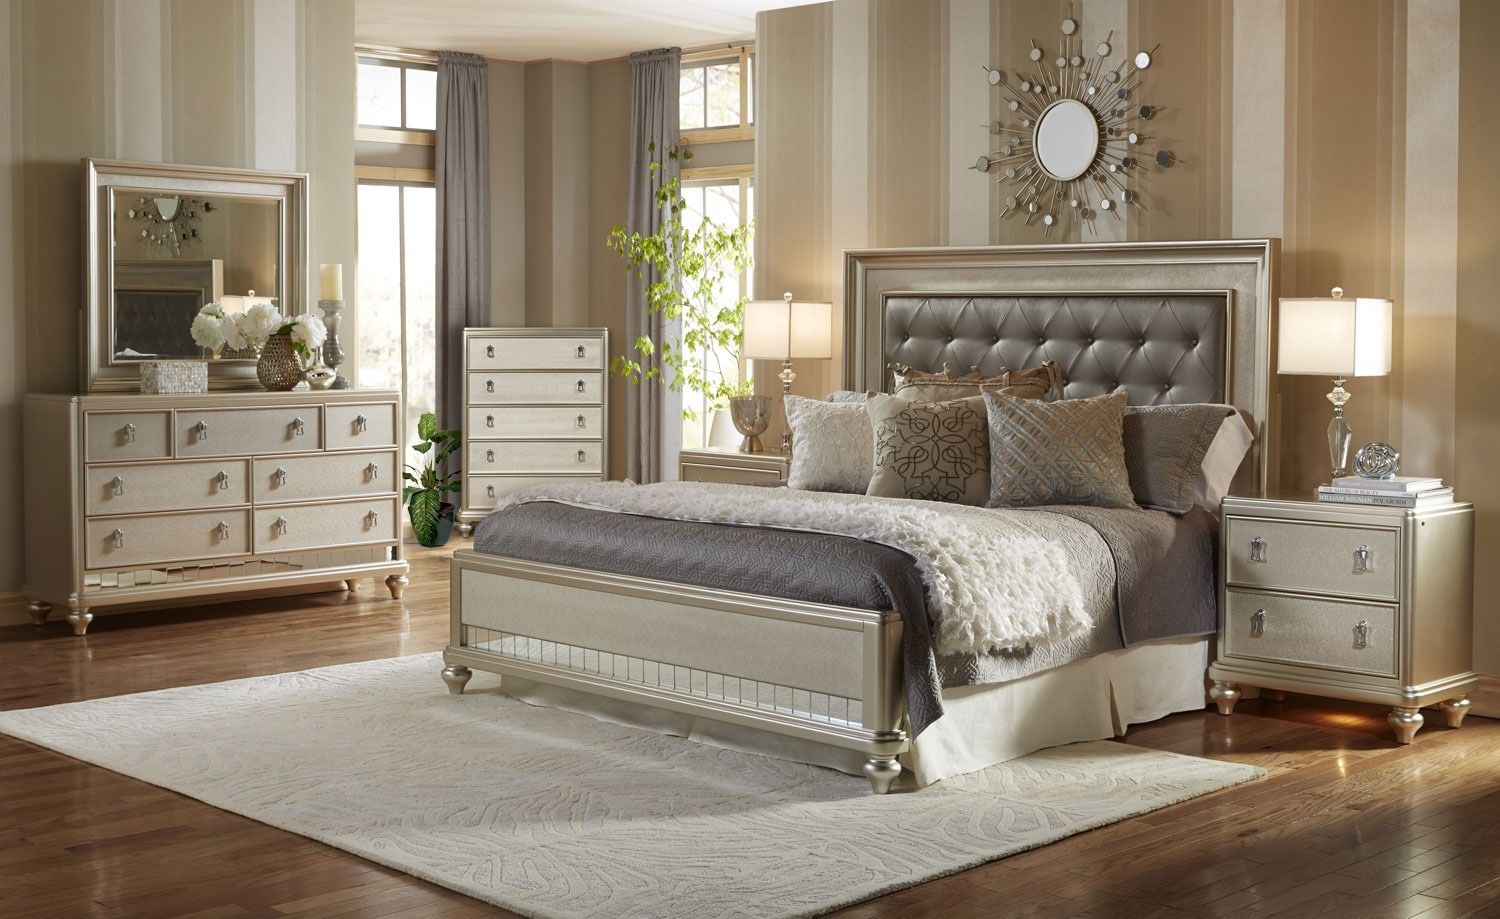 Bedroom Furniture - Diva 8-Piece King Bedroom Package